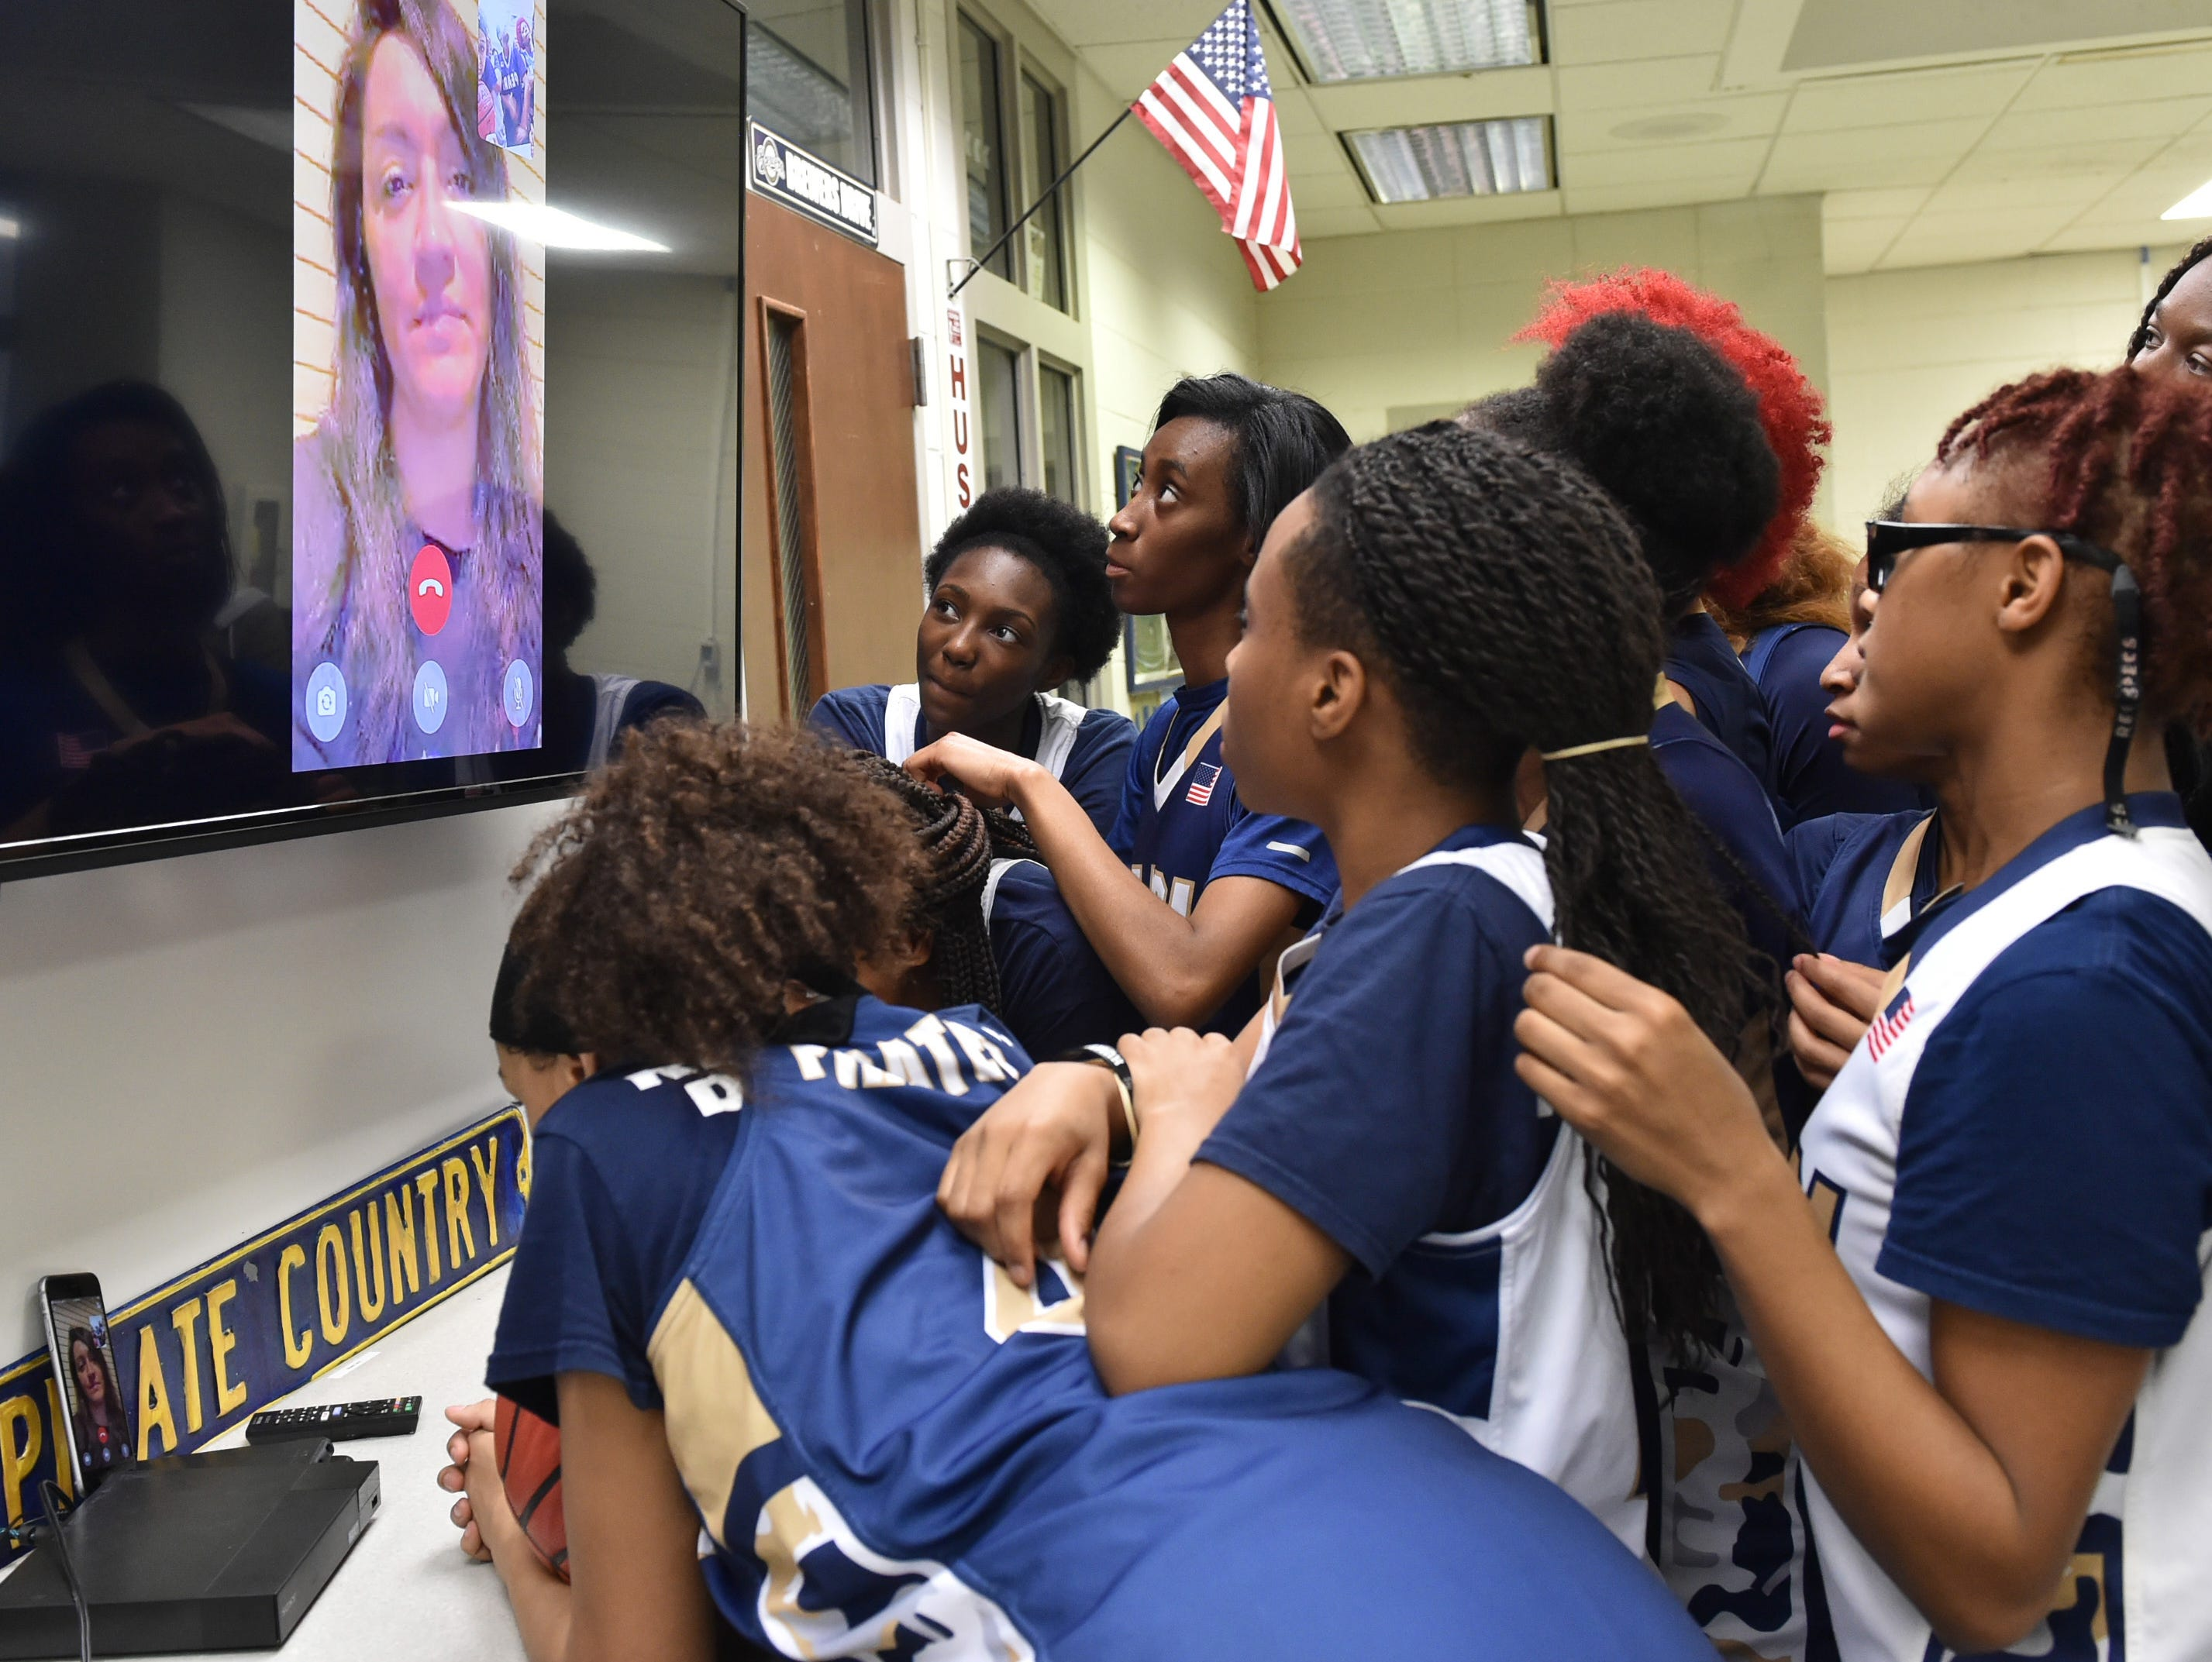 Pearl High School ladies basketball head coach Lacey Kennedy talks to her team via FaceTime video from Qatar where she is currently deployed with the U.S. Army reserve. Kennedy's husband, Jason Kennedy, has taken on the role of head coach while Mrs. Kennedy is away. Mr. Kennedy serves as assistant coach for the team when both Kennedys are home. Thursday, Feb. 21, 2019 in Pearl, Miss.